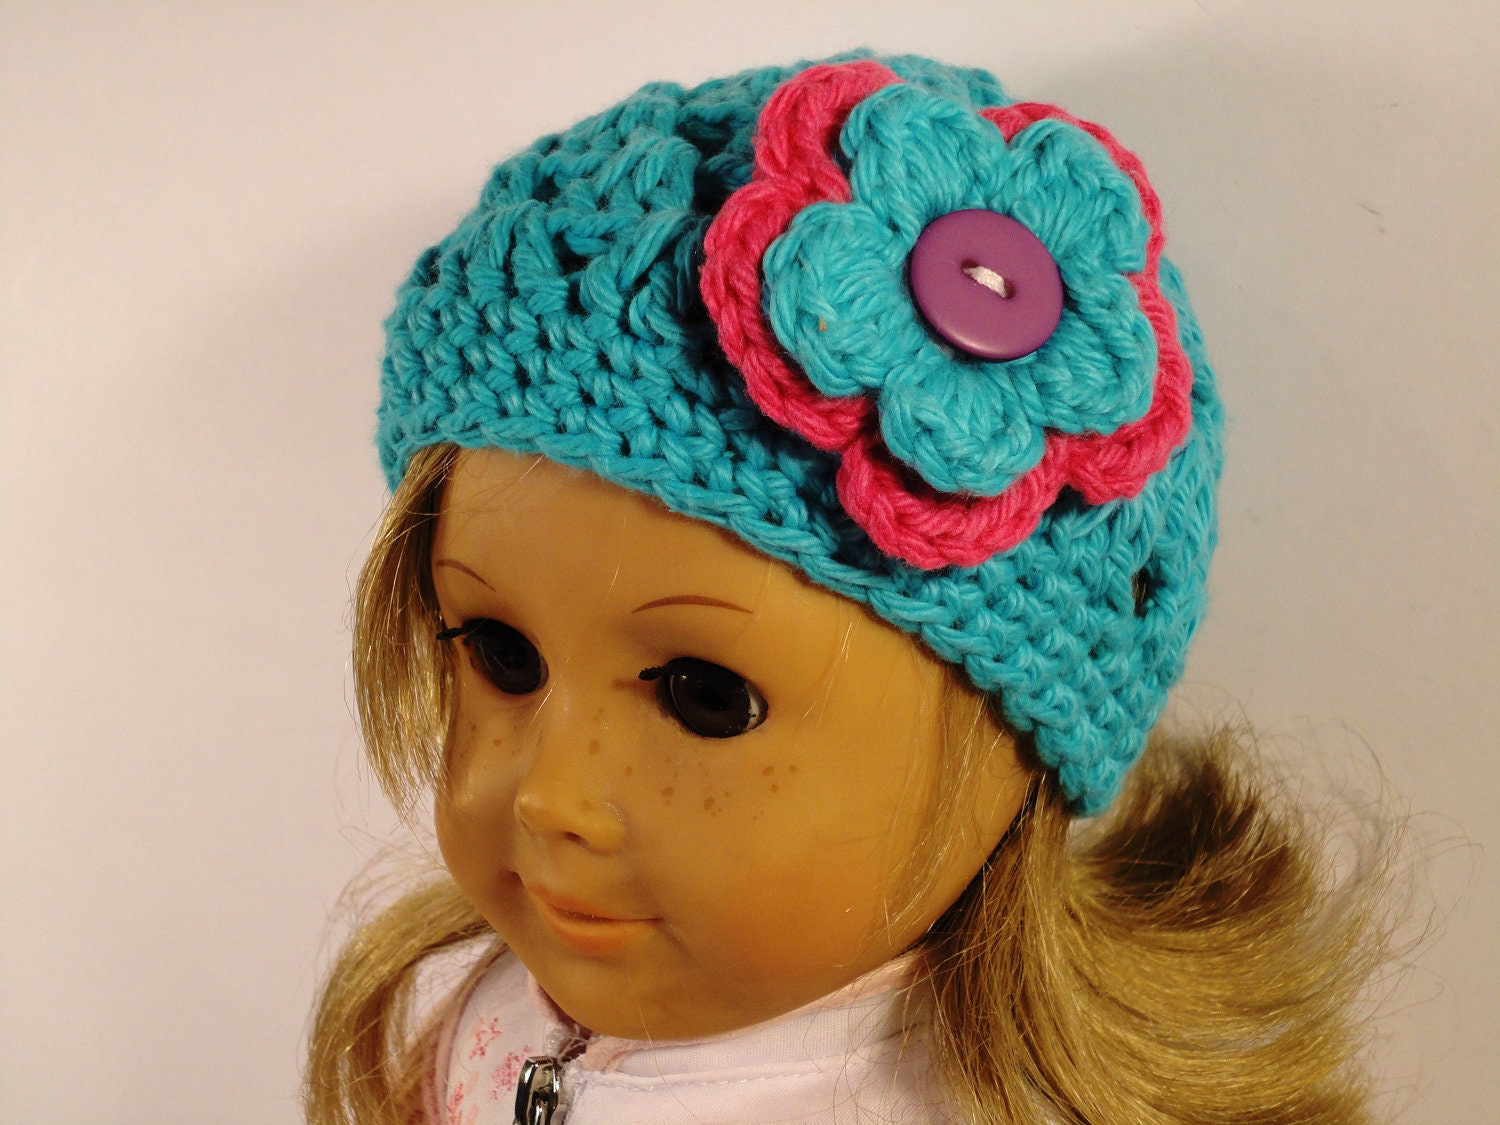 Crochet Hat Pattern American Girl Doll : Crochet Hat Pattern American Girl Pattern Fits 18